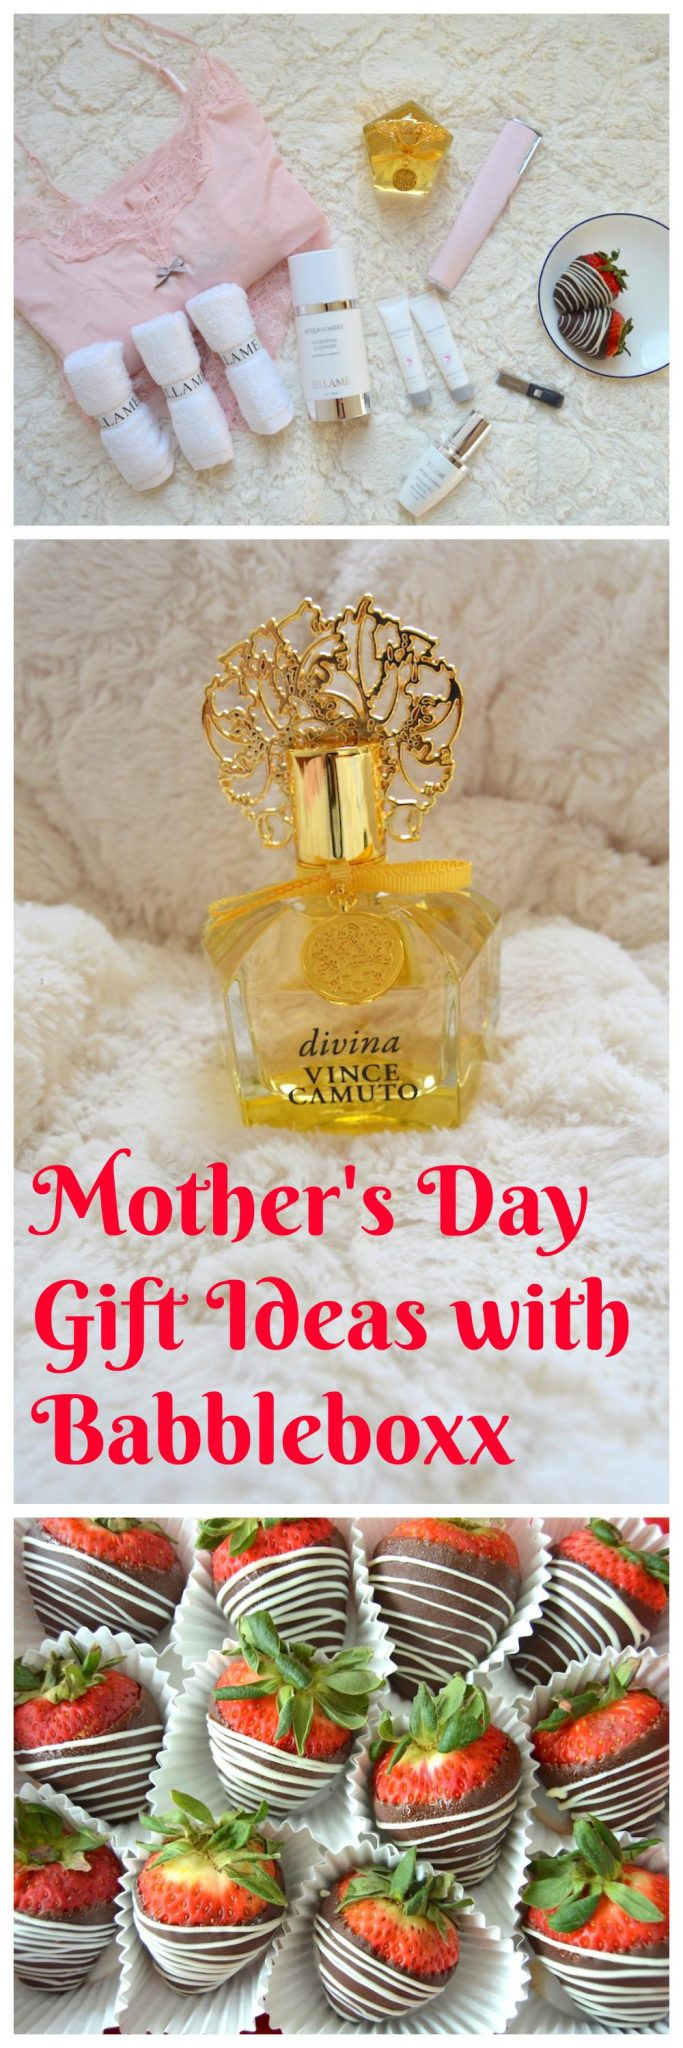 Mother's Day Babbleboxx